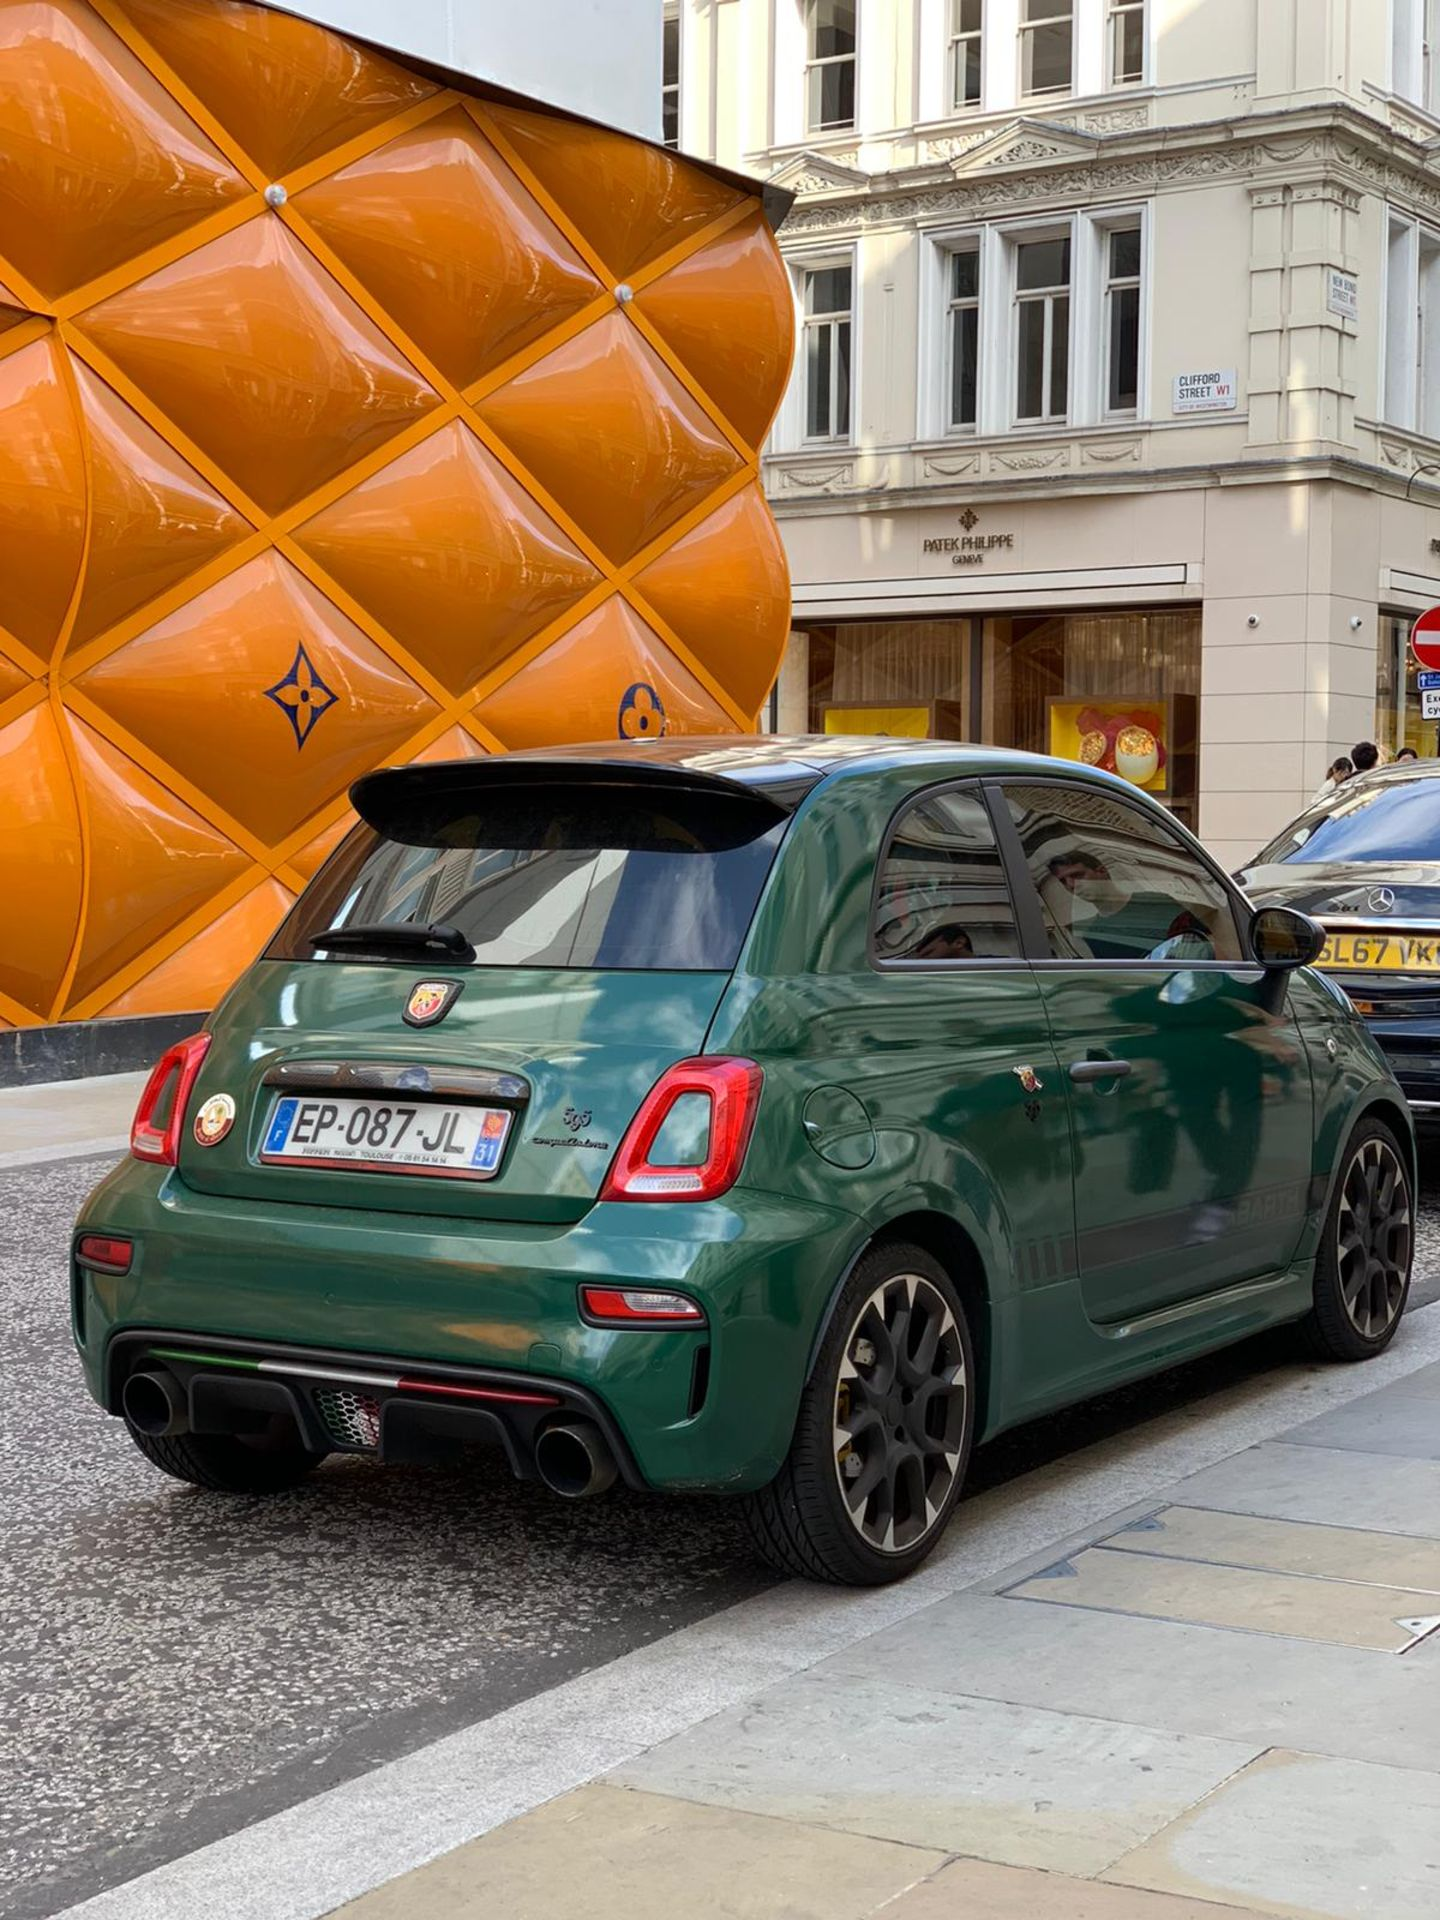 Lotto 174 - ABARTH 595 COMP 2016, 10,000 MILES NO ACCIDENTS, CUSTOM EXHAUST, WRAPPED DARK GREEN, FRENCH PLATES